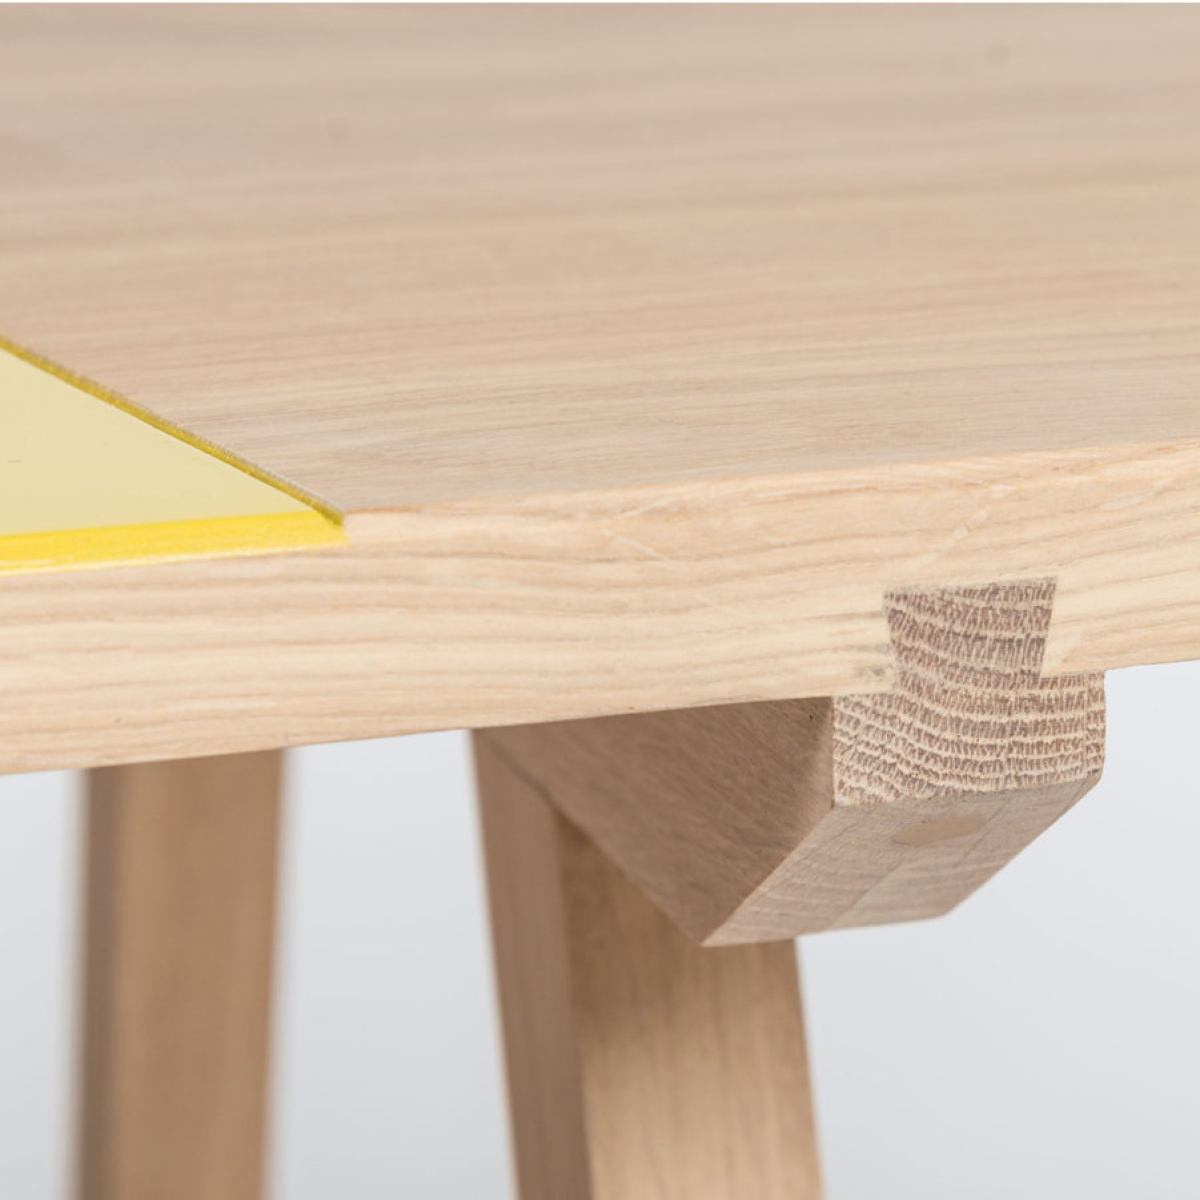 Tabletop with dovetail joint